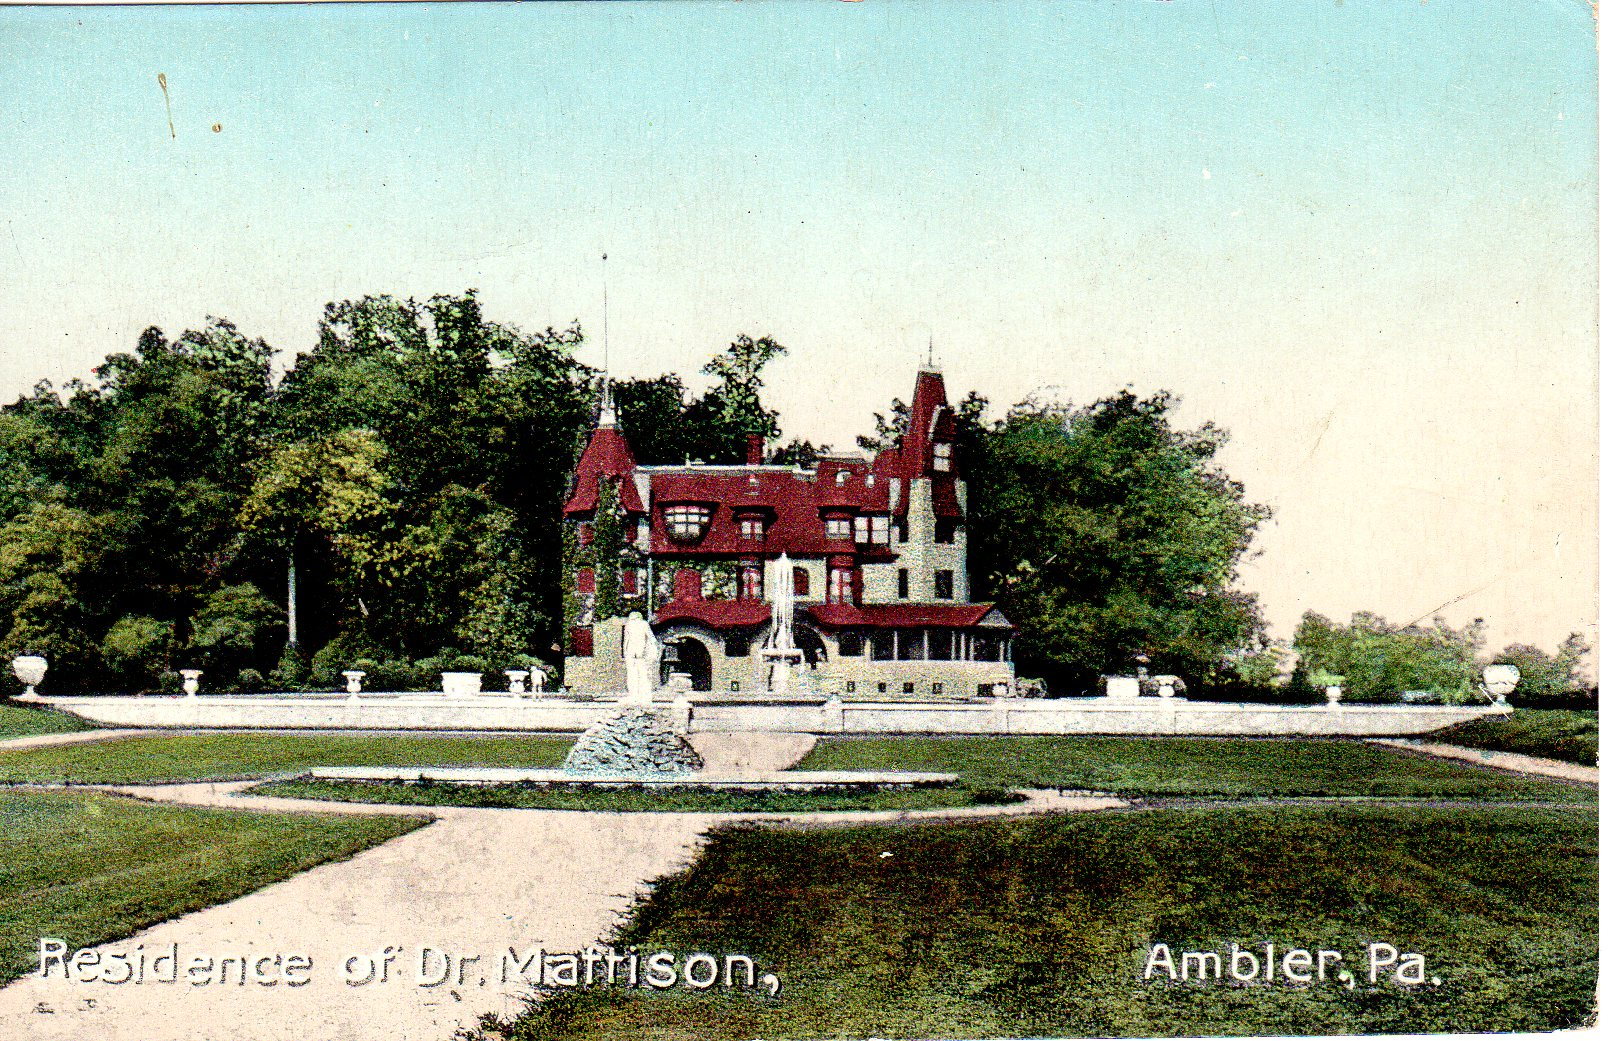 Post Card Collection (E Simon)_2682_34_Residence of Dr Mattison, Ambler, Pa